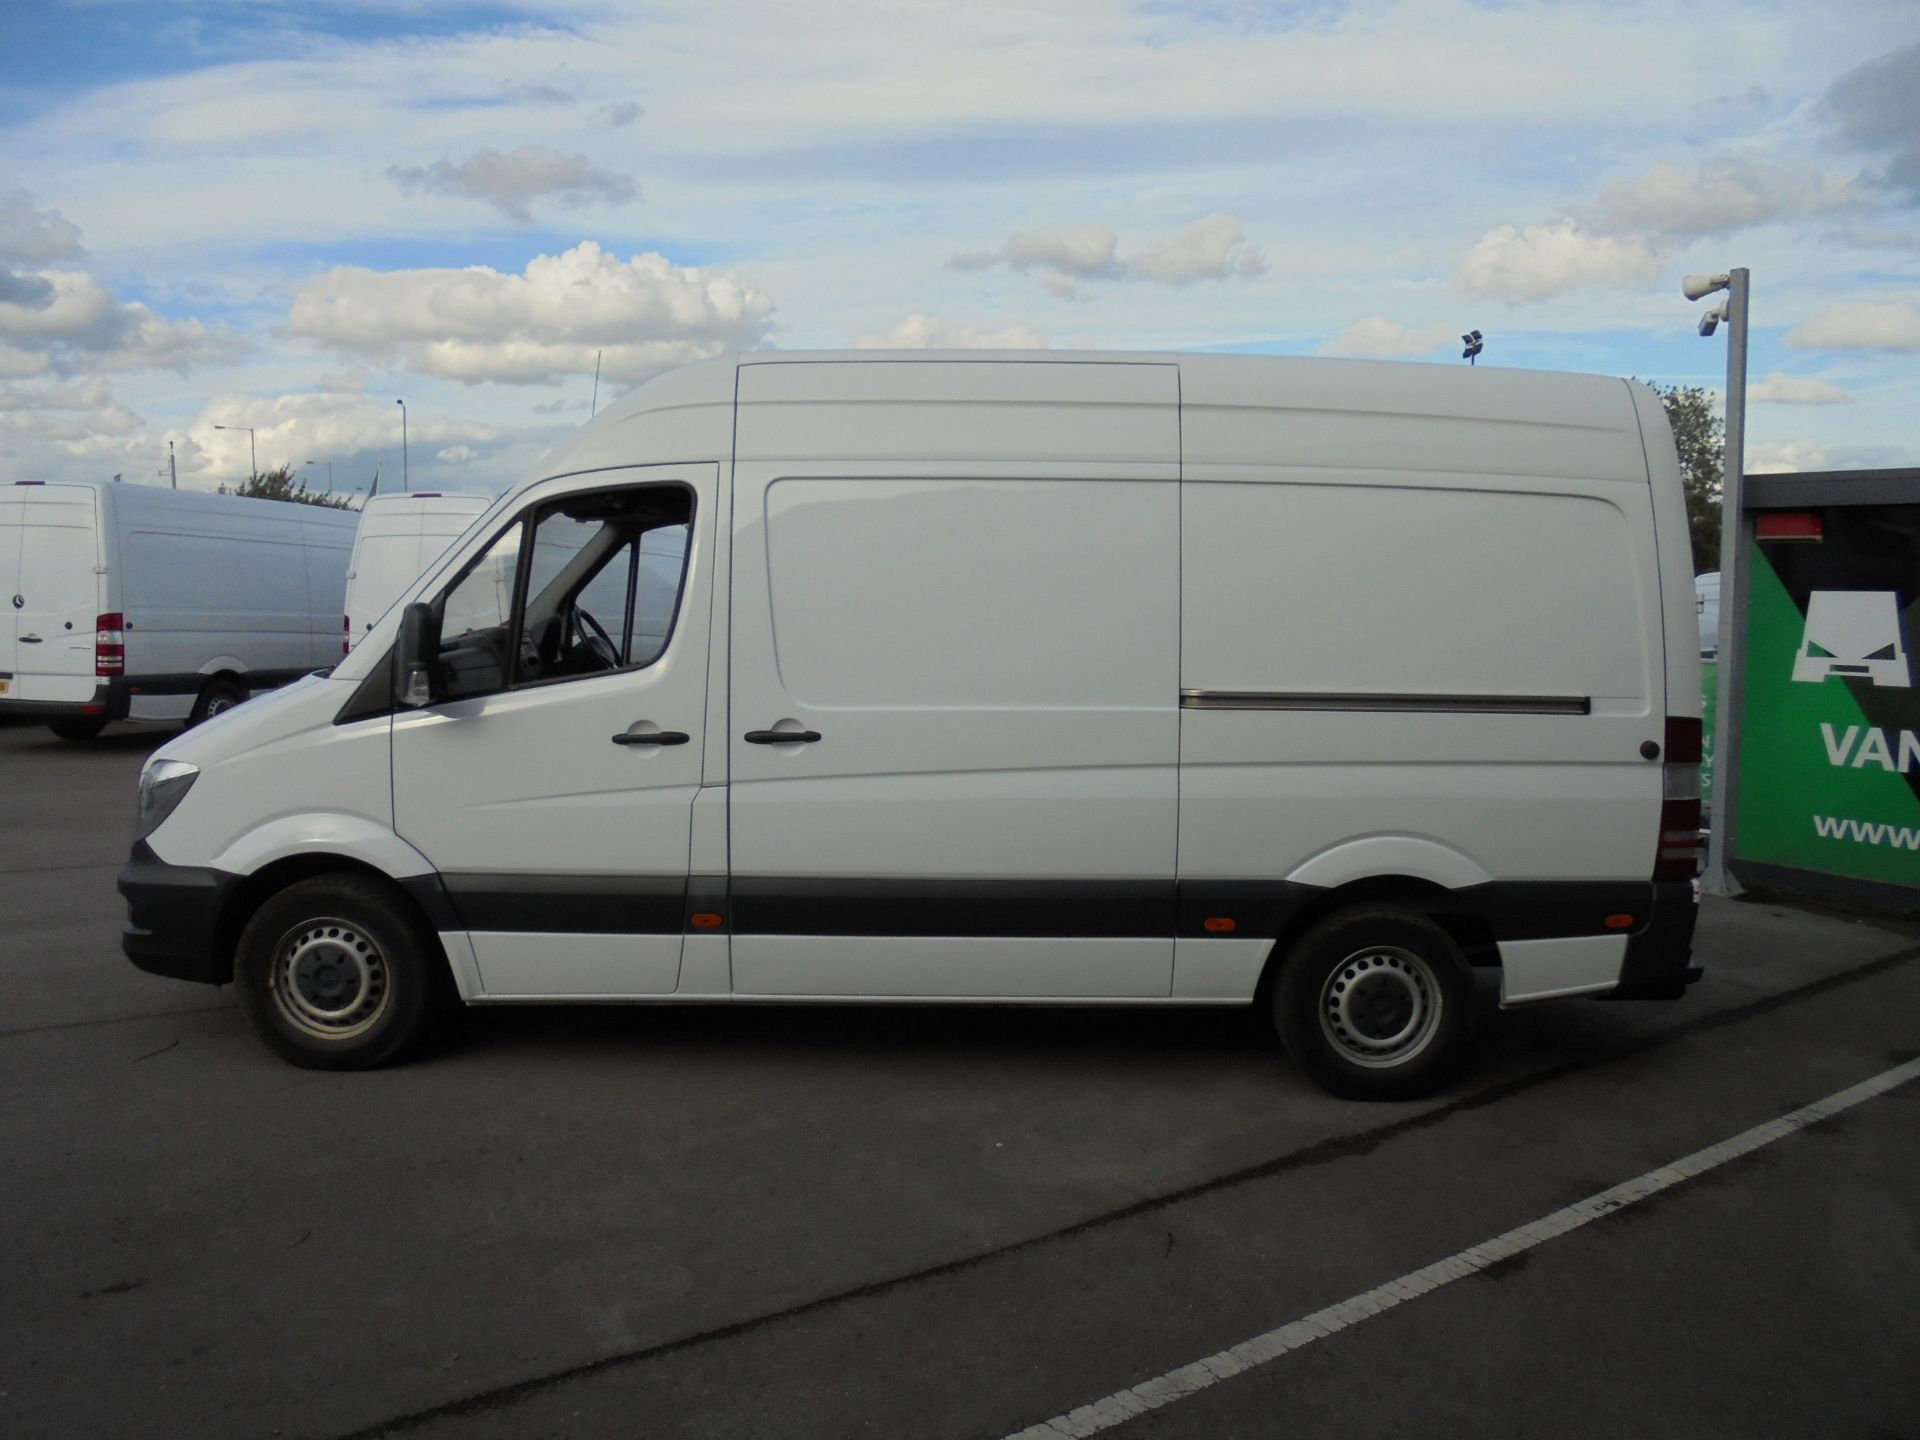 2016 Mercedes-Benz Sprinter 3.5T High Roof Van MWB (KP66HTY) Thumbnail 4